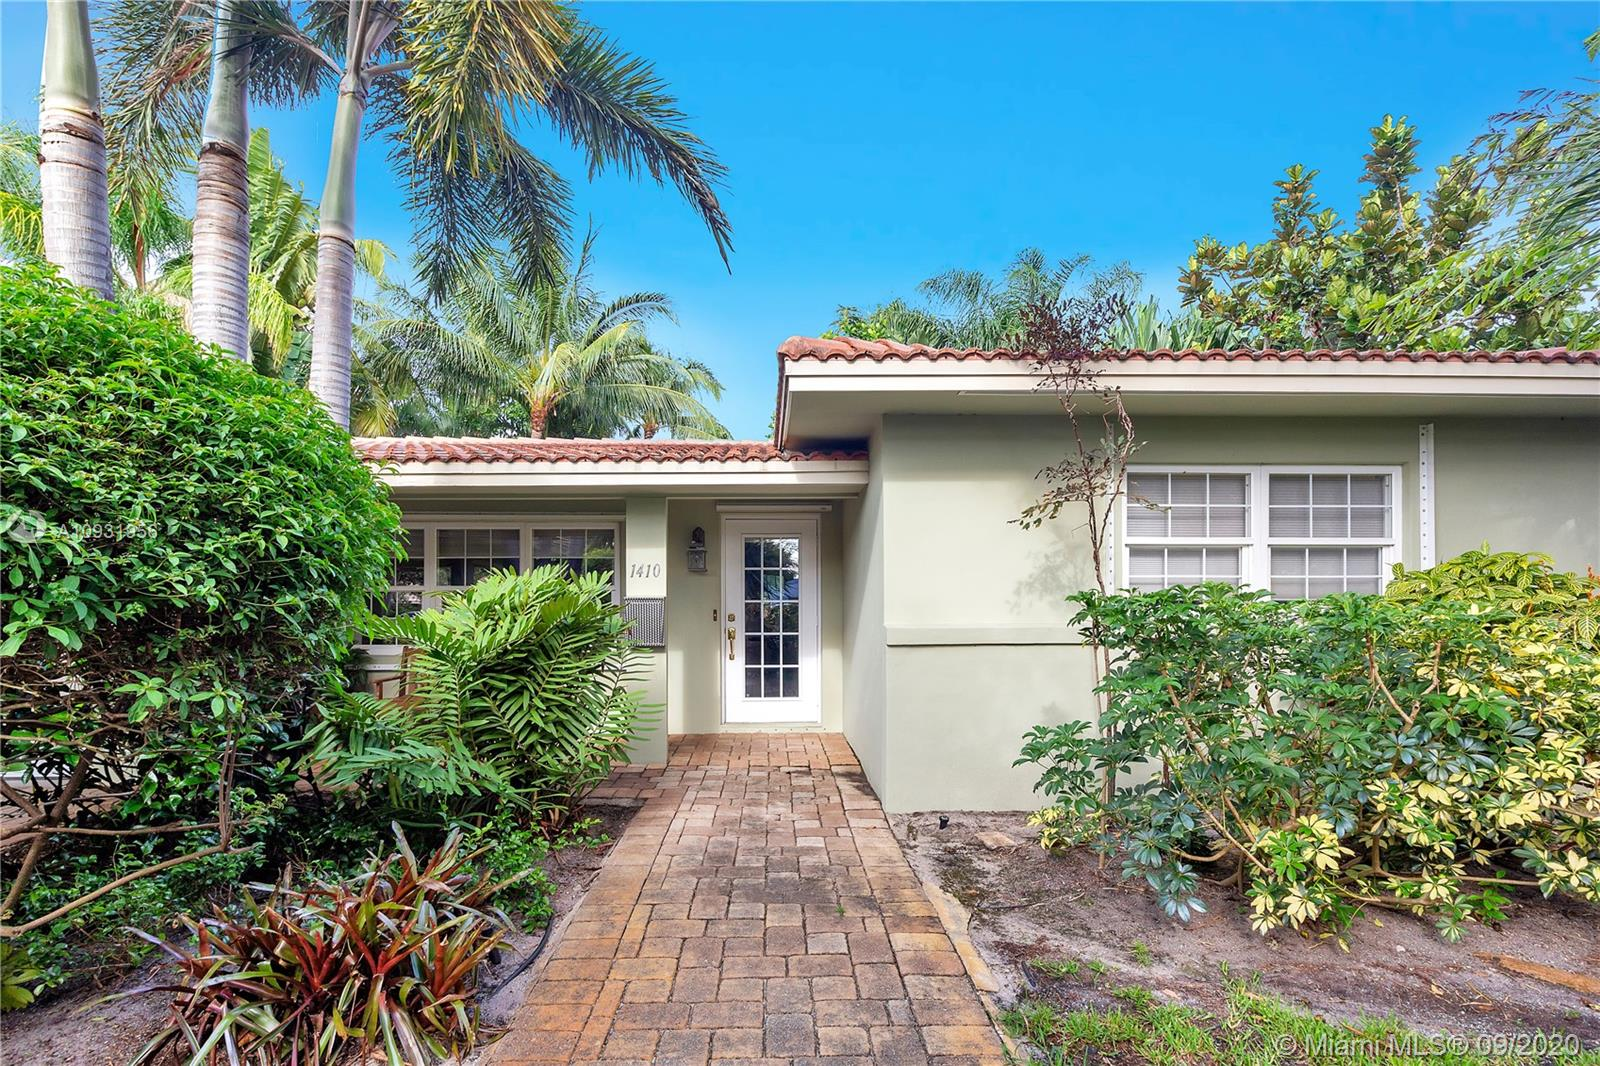 Property for sale at 1410 NE 16th Ave, Fort Lauderdale,  Florida 33304